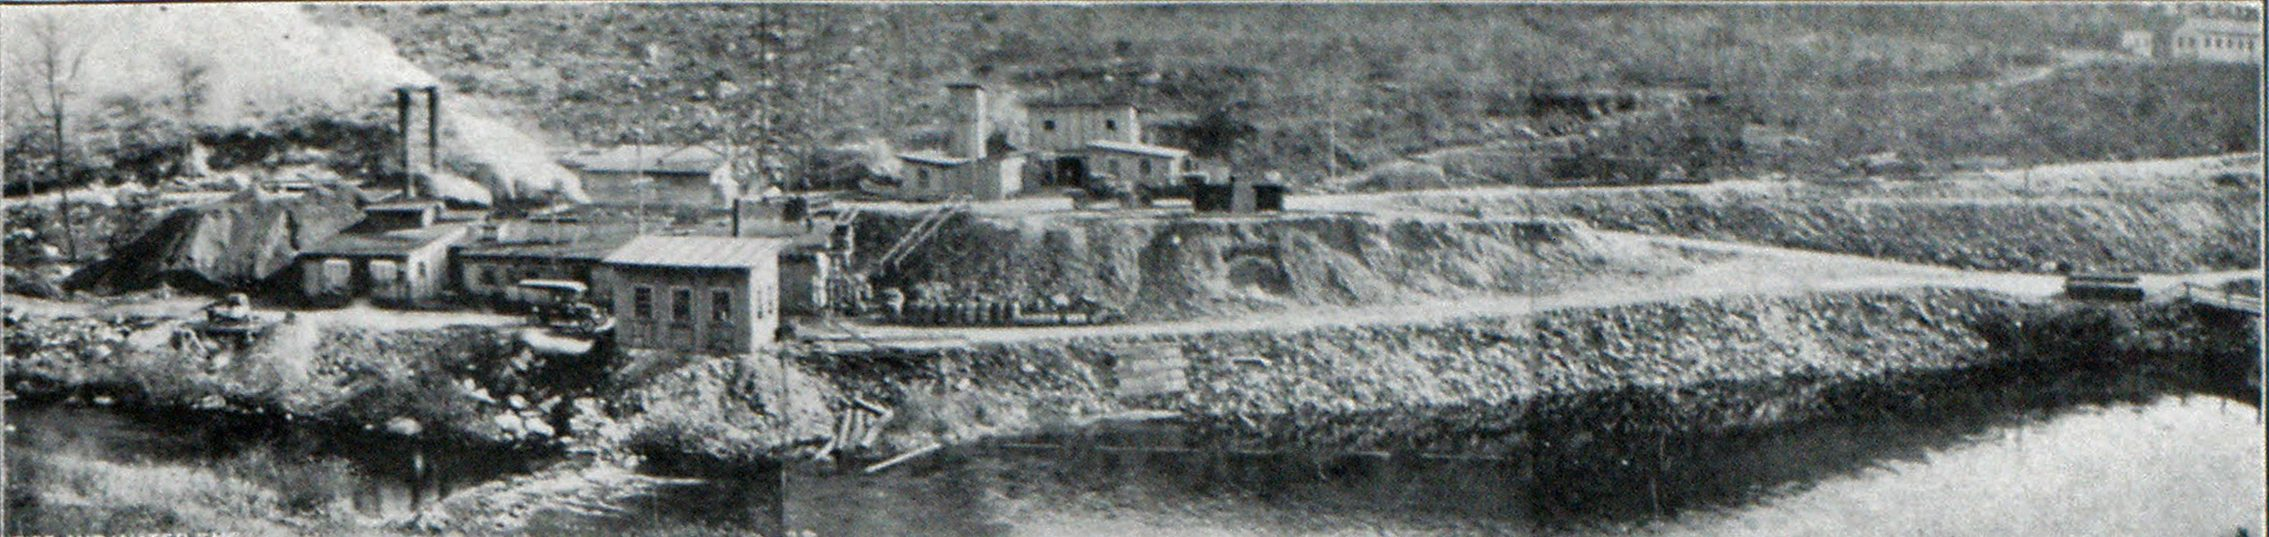 Panoramic View of Waterbury, Conn., Engineering Project in Sbepaug Valley, the Approximate Cost of Which Is Figured at $3,000,000. Entrance to Tunnel Is to Be Seen Slightly to the Right of Top of Steps Leading from Lower Pathway in Center of Picture